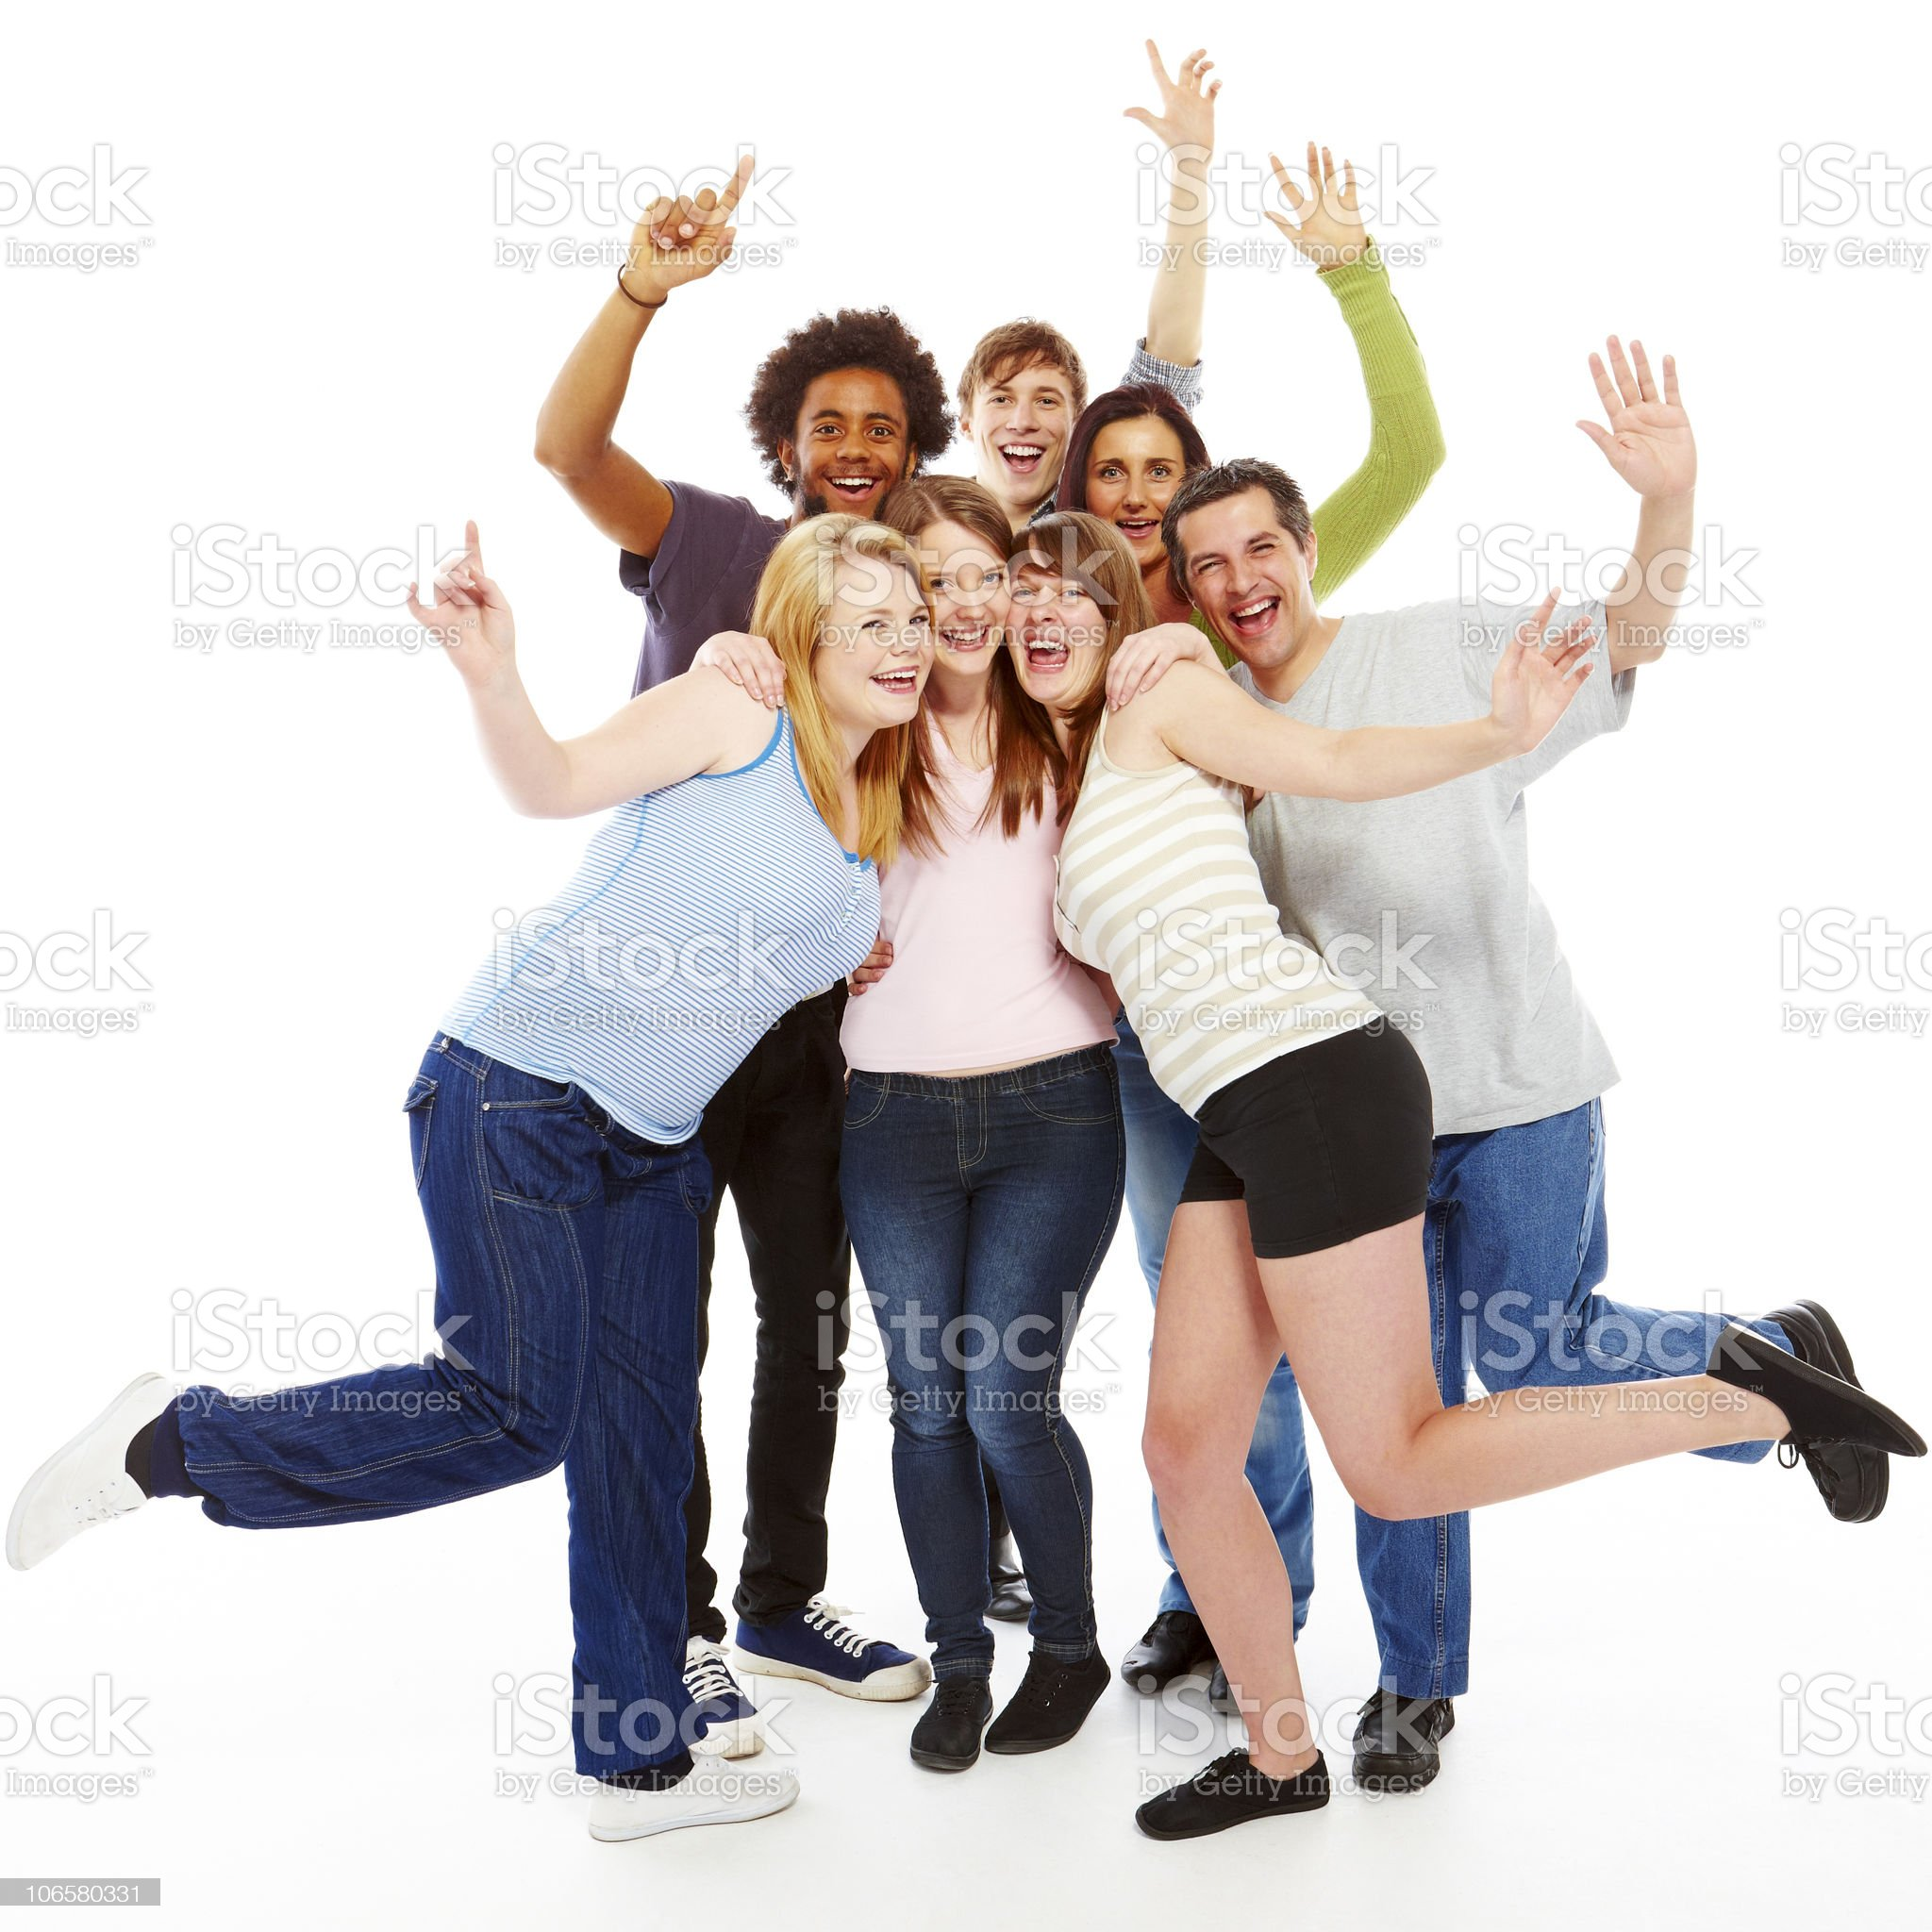 group of happy people hugging isolated on white background royalty-free stock photo